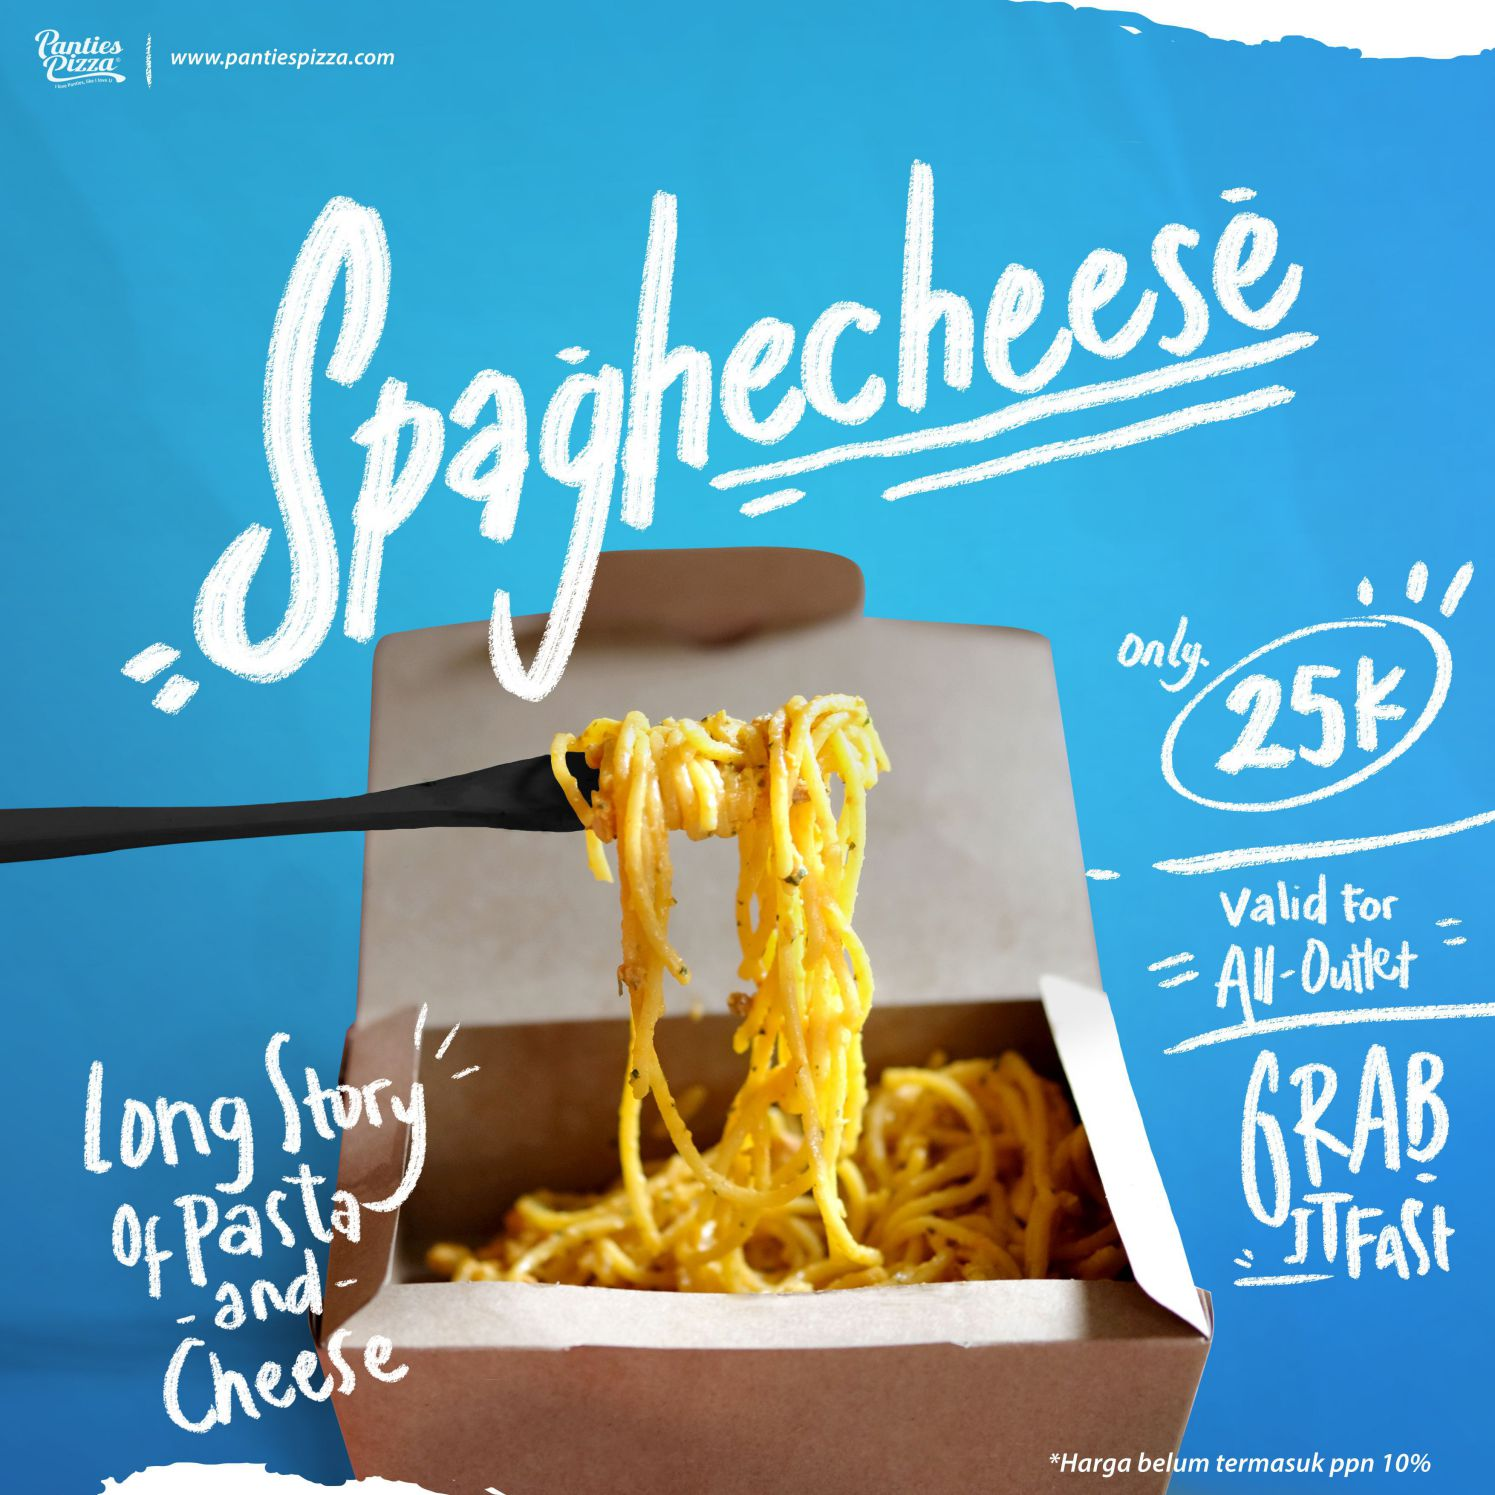 Spaghecheese Panties Pizza Menu Snack Baru Spaghecheese and French Zone Only at Panties Pizza